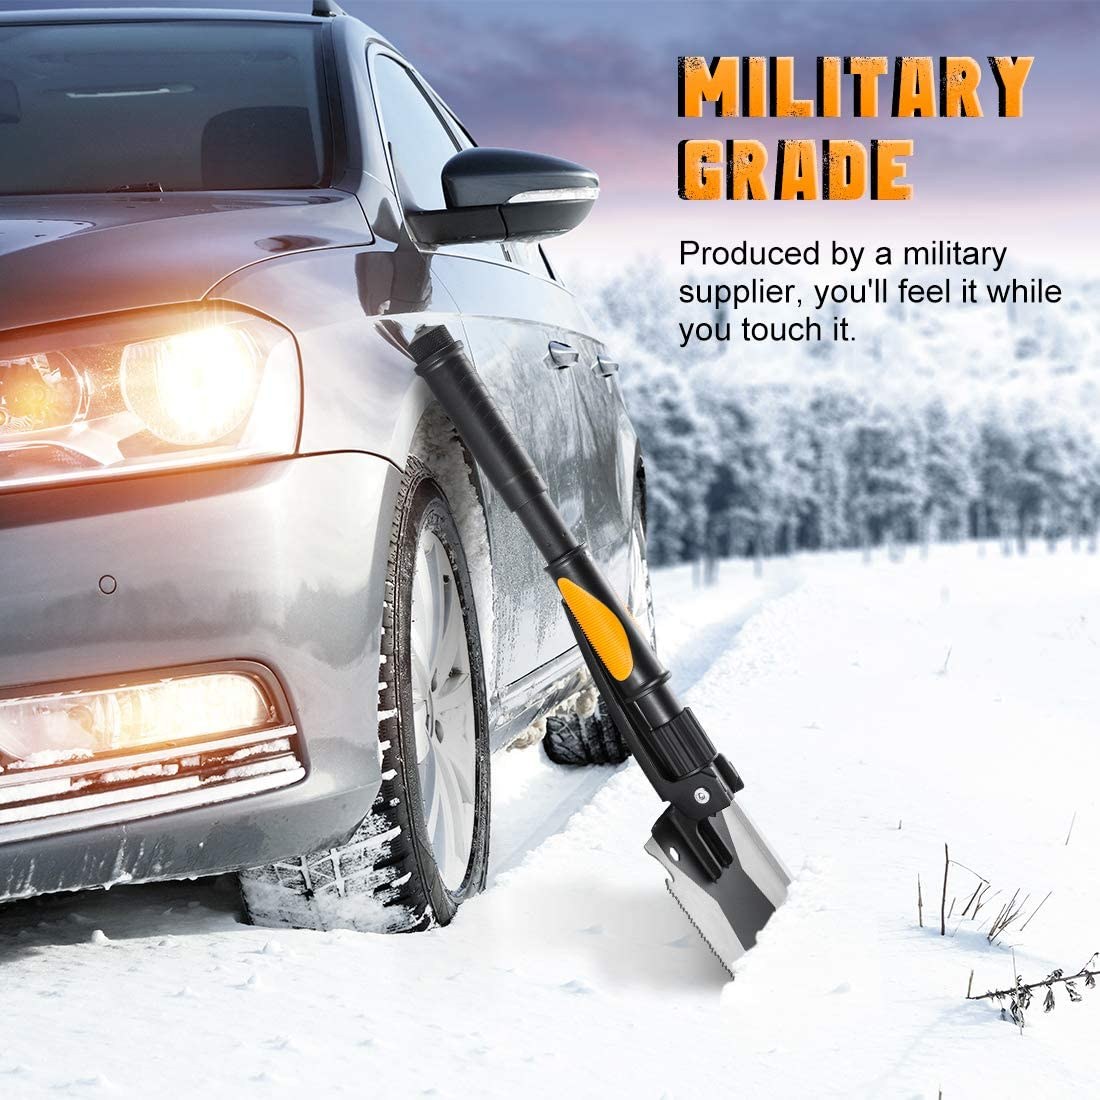 OKOOLCAMP Survival Camping Shovel Military Multifunctional Folding Shovel 15-28inch Heavy Duty Alloy Steel Tactical Shovel with Saw for Hiking, Backpacking, Gardening, Hunting, Car Emergency, Snow : Sports & Outdoors